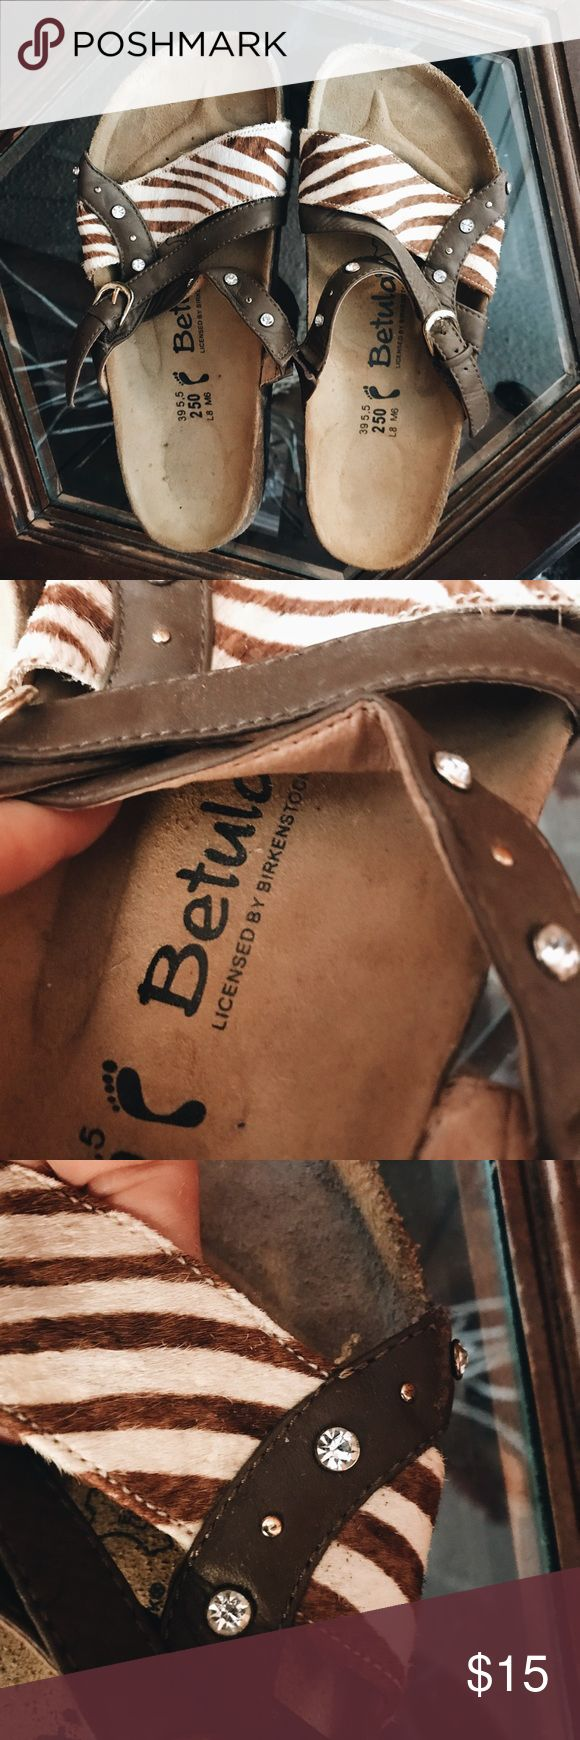 Betula sandals This brand is by Birkenstock. You can see it says that on that bottom of the shoe. Super excellent condition Birkenstock Shoes Sandals